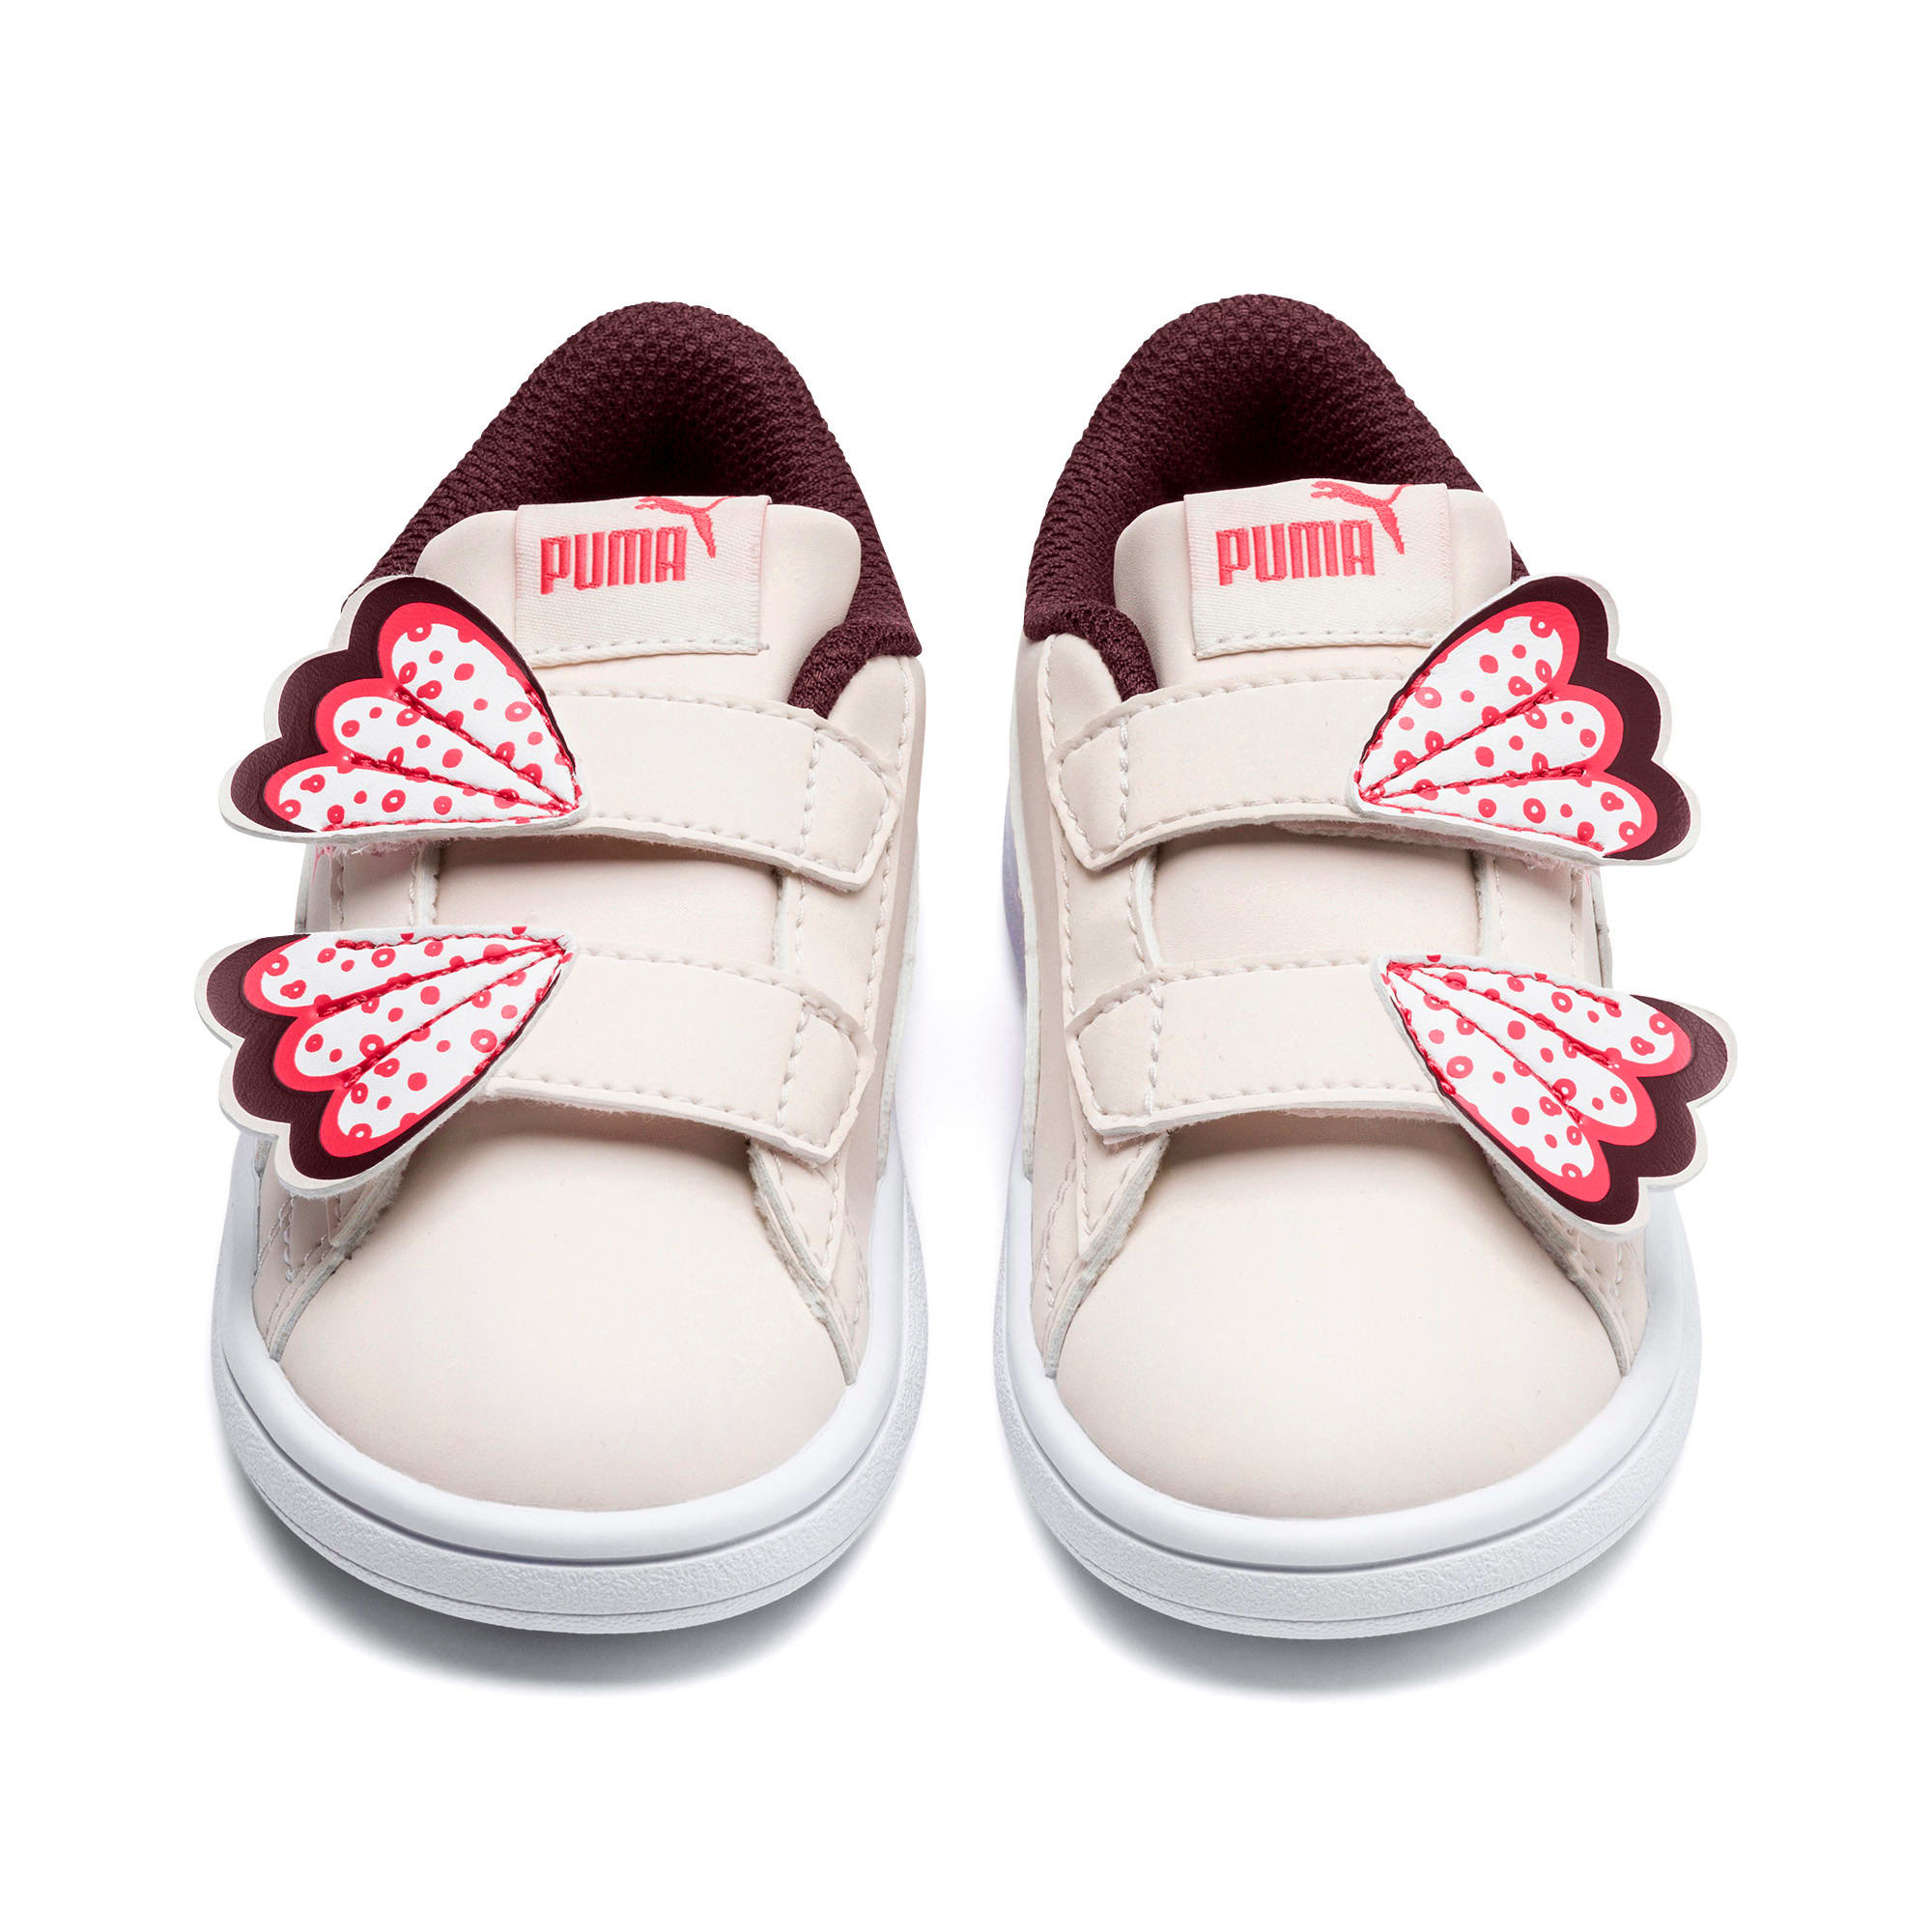 Thumbnail 7 of PUMA Smash v2 Butterfly Baby Girls' Trainers, Pastel Parchment-Vineyard, medium